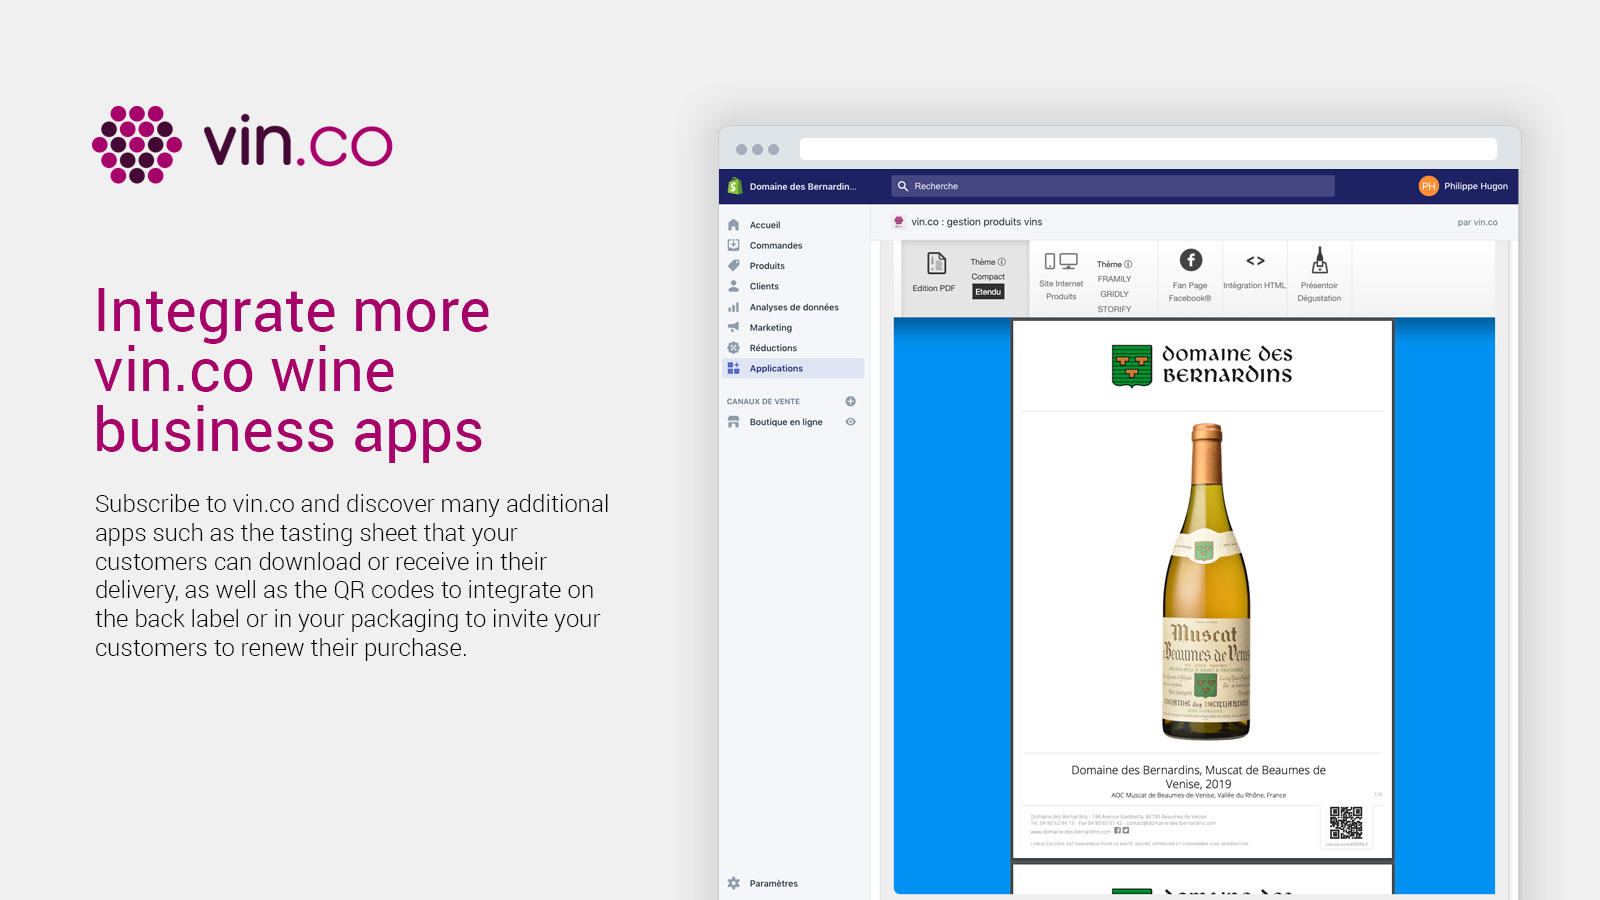 Integrate more vin.co business apps